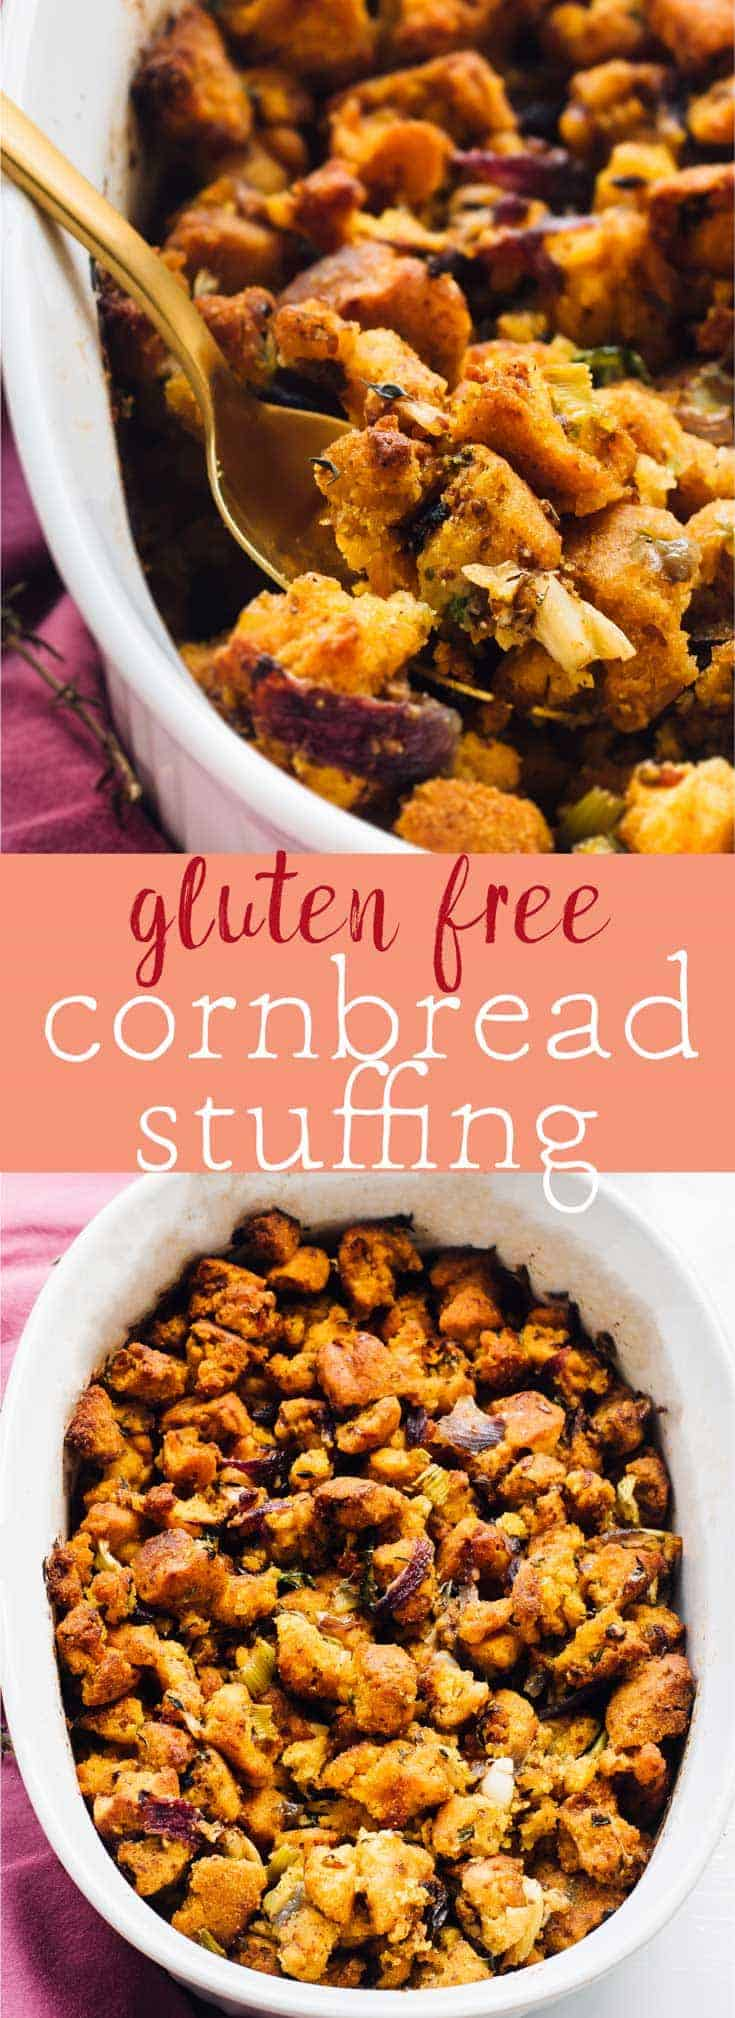 This Gluten Free Cornbread Stuffing will be a star at your Thanksgiving dinner! It's a healthier side dish that is deliciously simple, loaded with lots of flavour and is vegan! via https://jessicainthekitchen.com